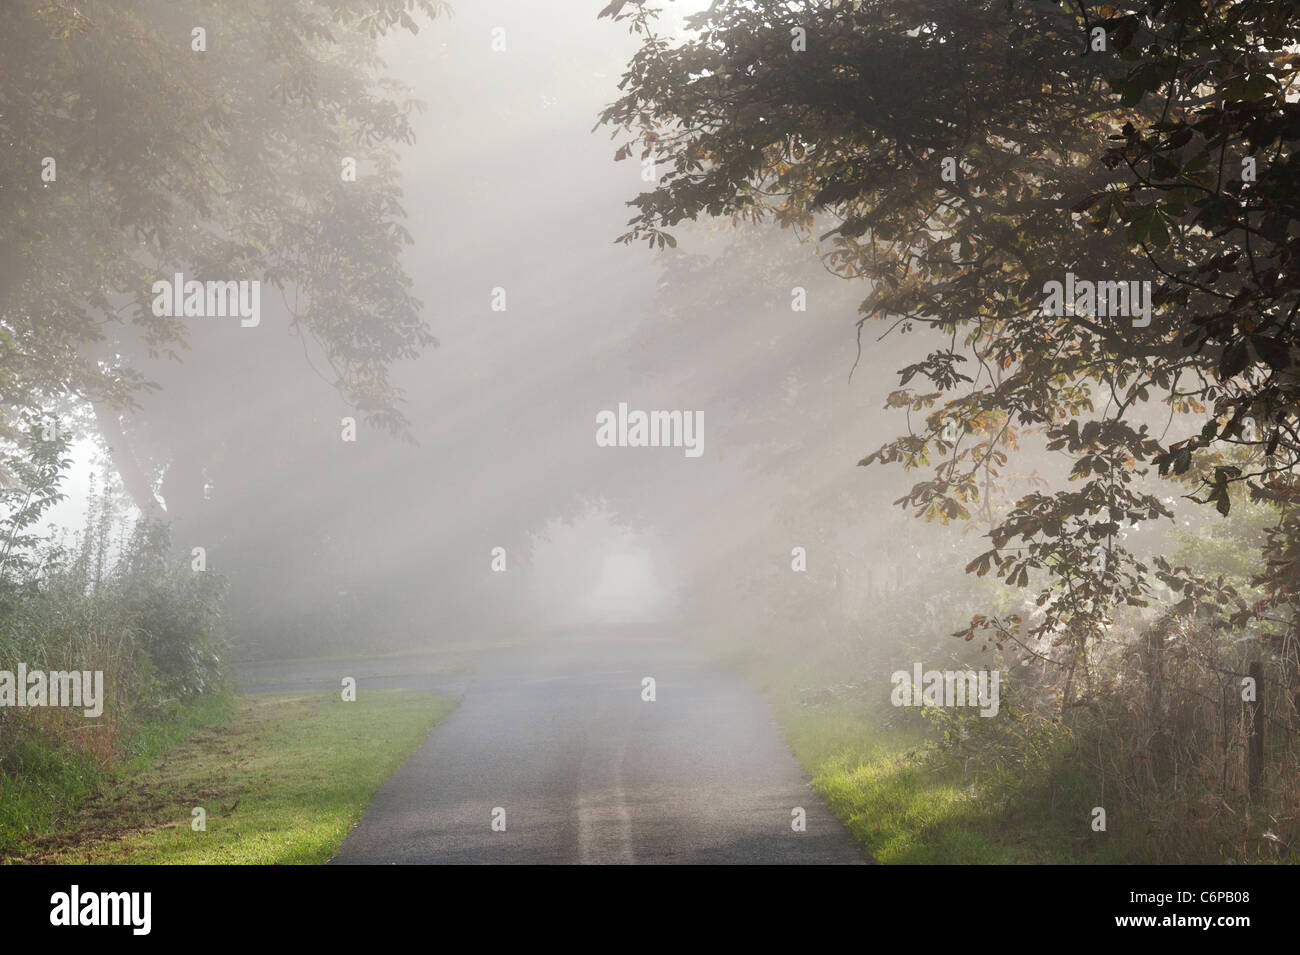 Sun rays through Horse chestnut trees on a country road in early morning misty English countryside Stock Photo